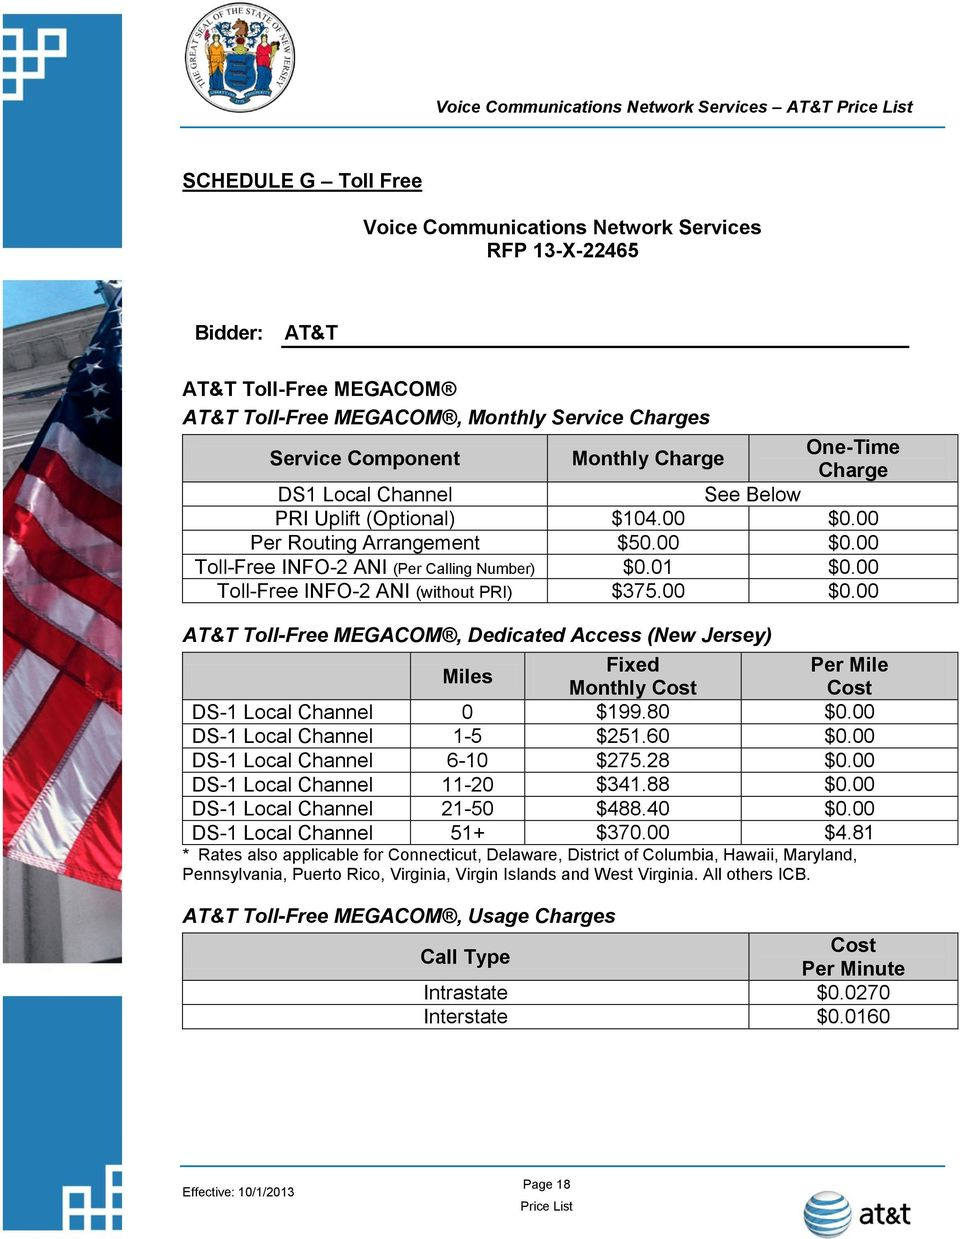 AT&T Price List  Voice Communications Network Services